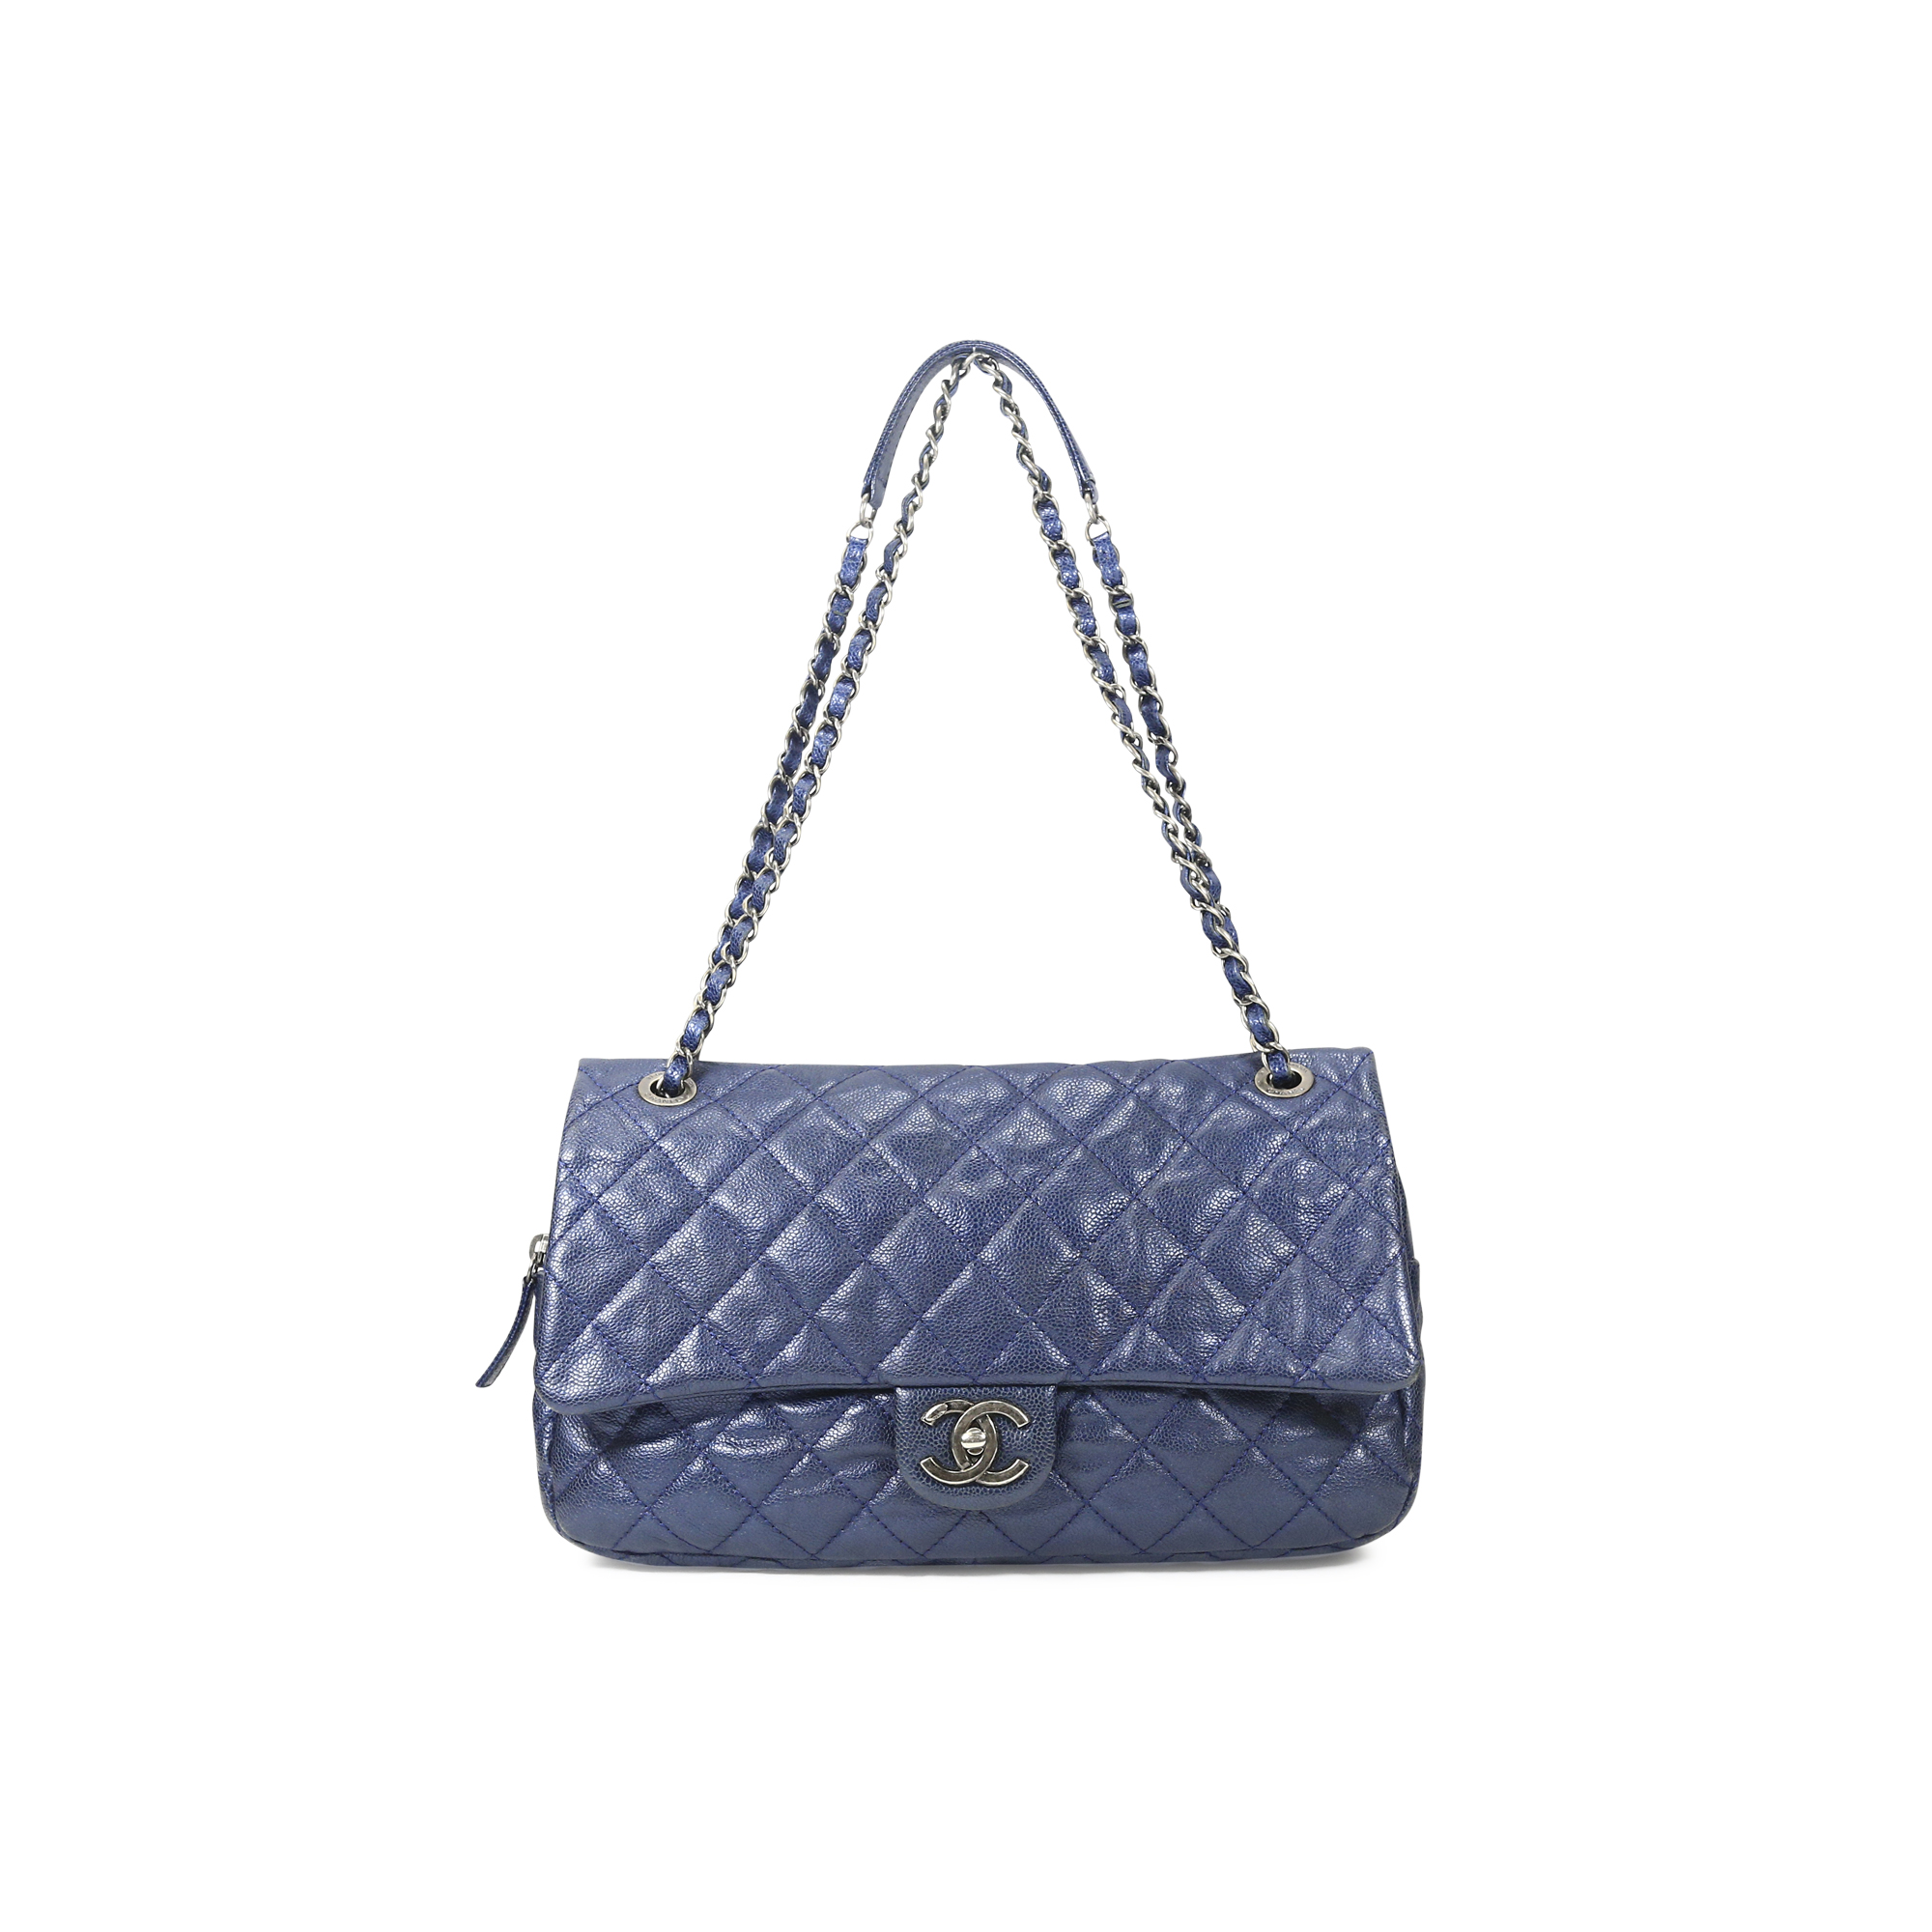 ee36d6b576ed Authentic Second Hand Chanel Caviar Easy Flap Bag (PSS-025-00054 ...